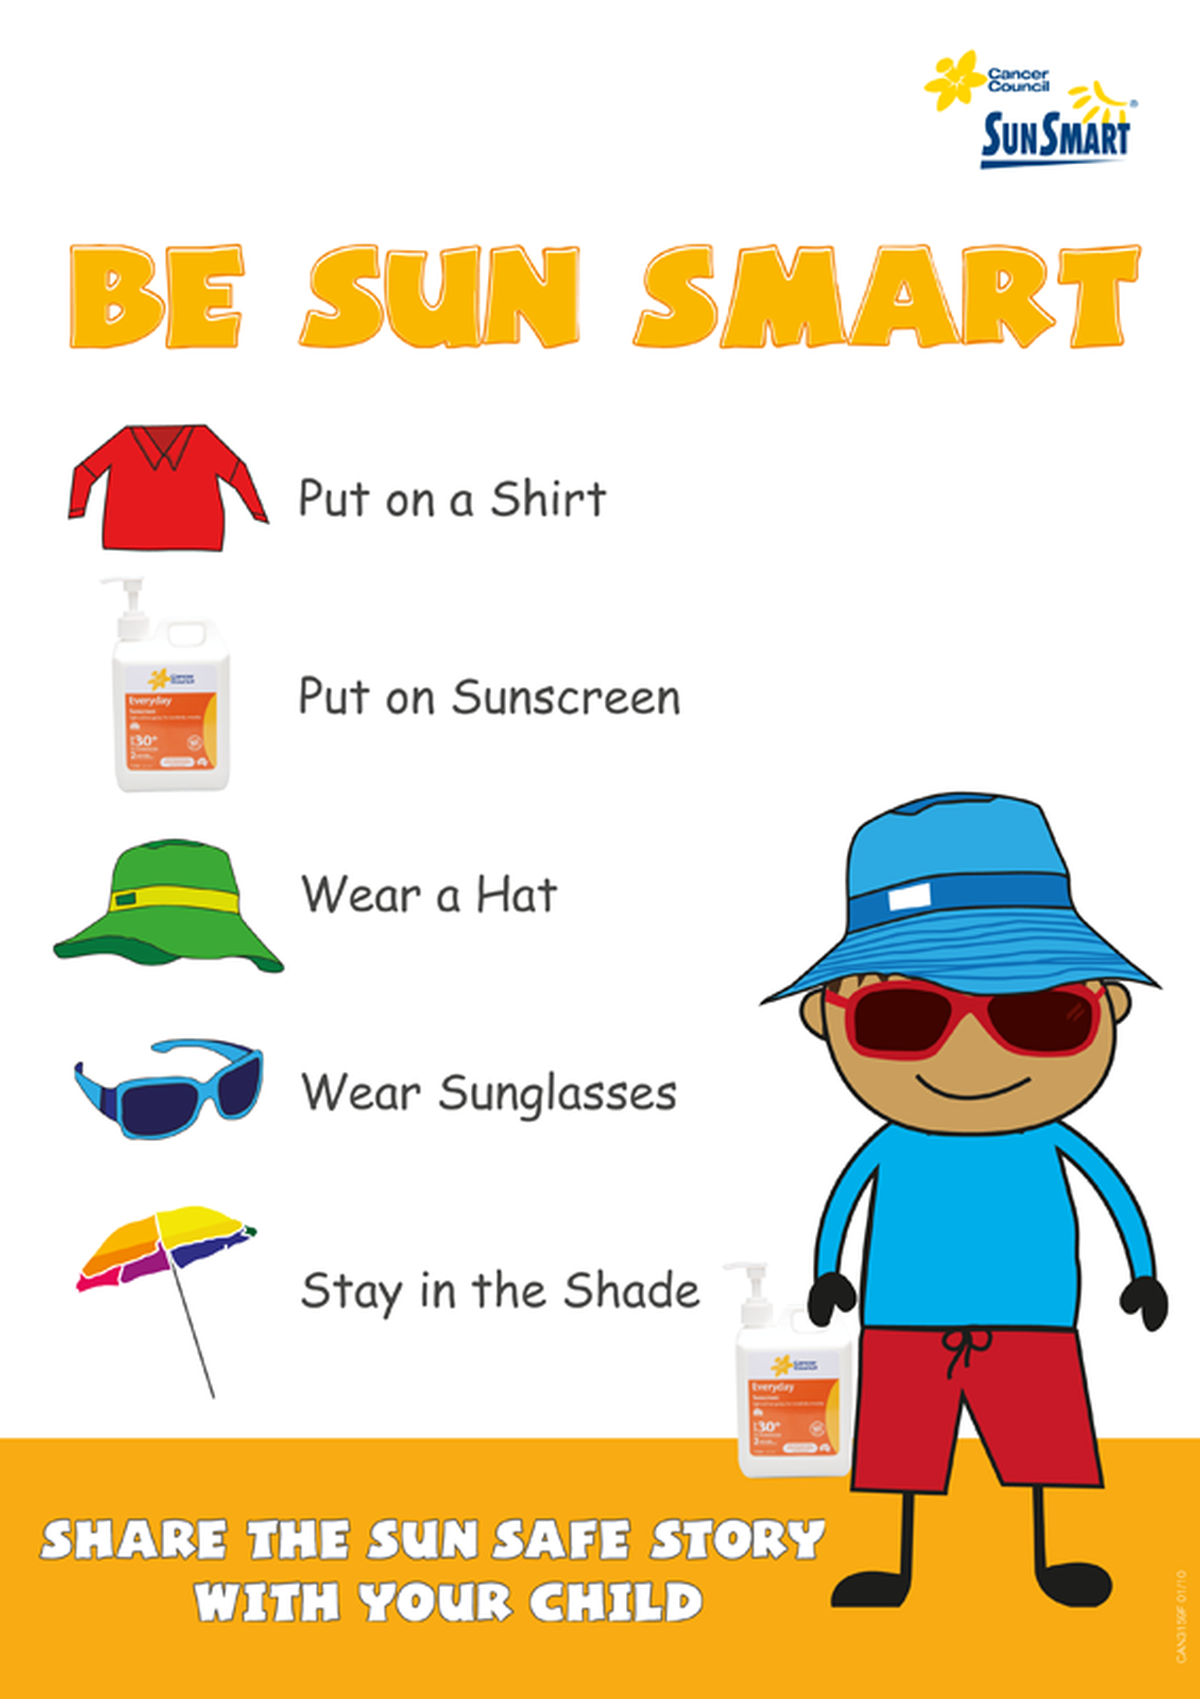 5 Ways To Protect Children From The Sun